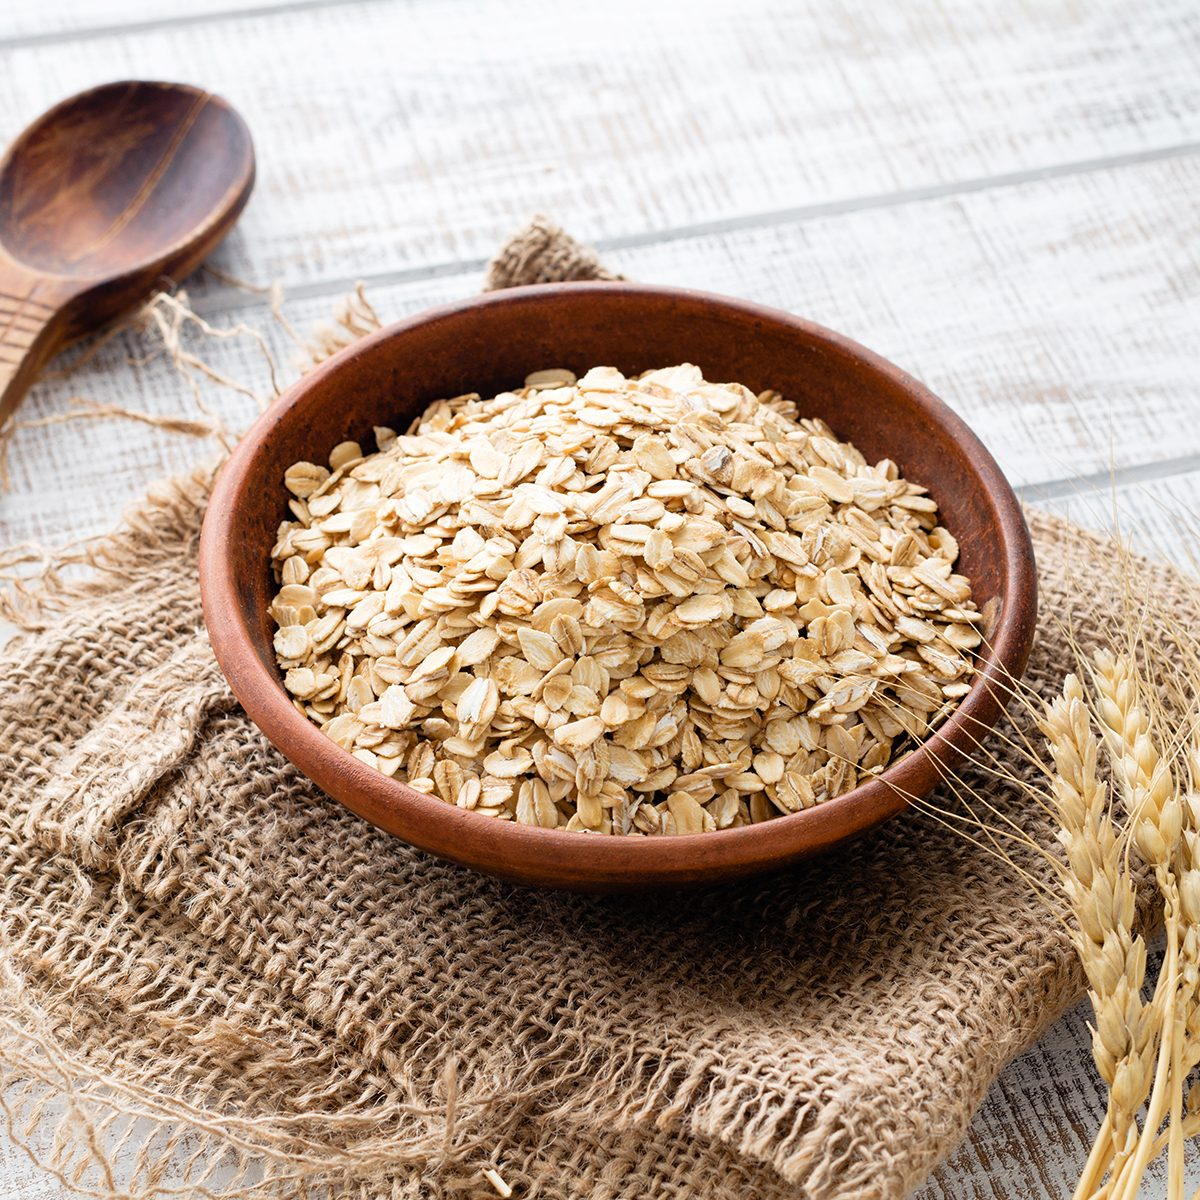 Rolled oats, healthy breakfast cereal oat flakes in bowl on wooden table